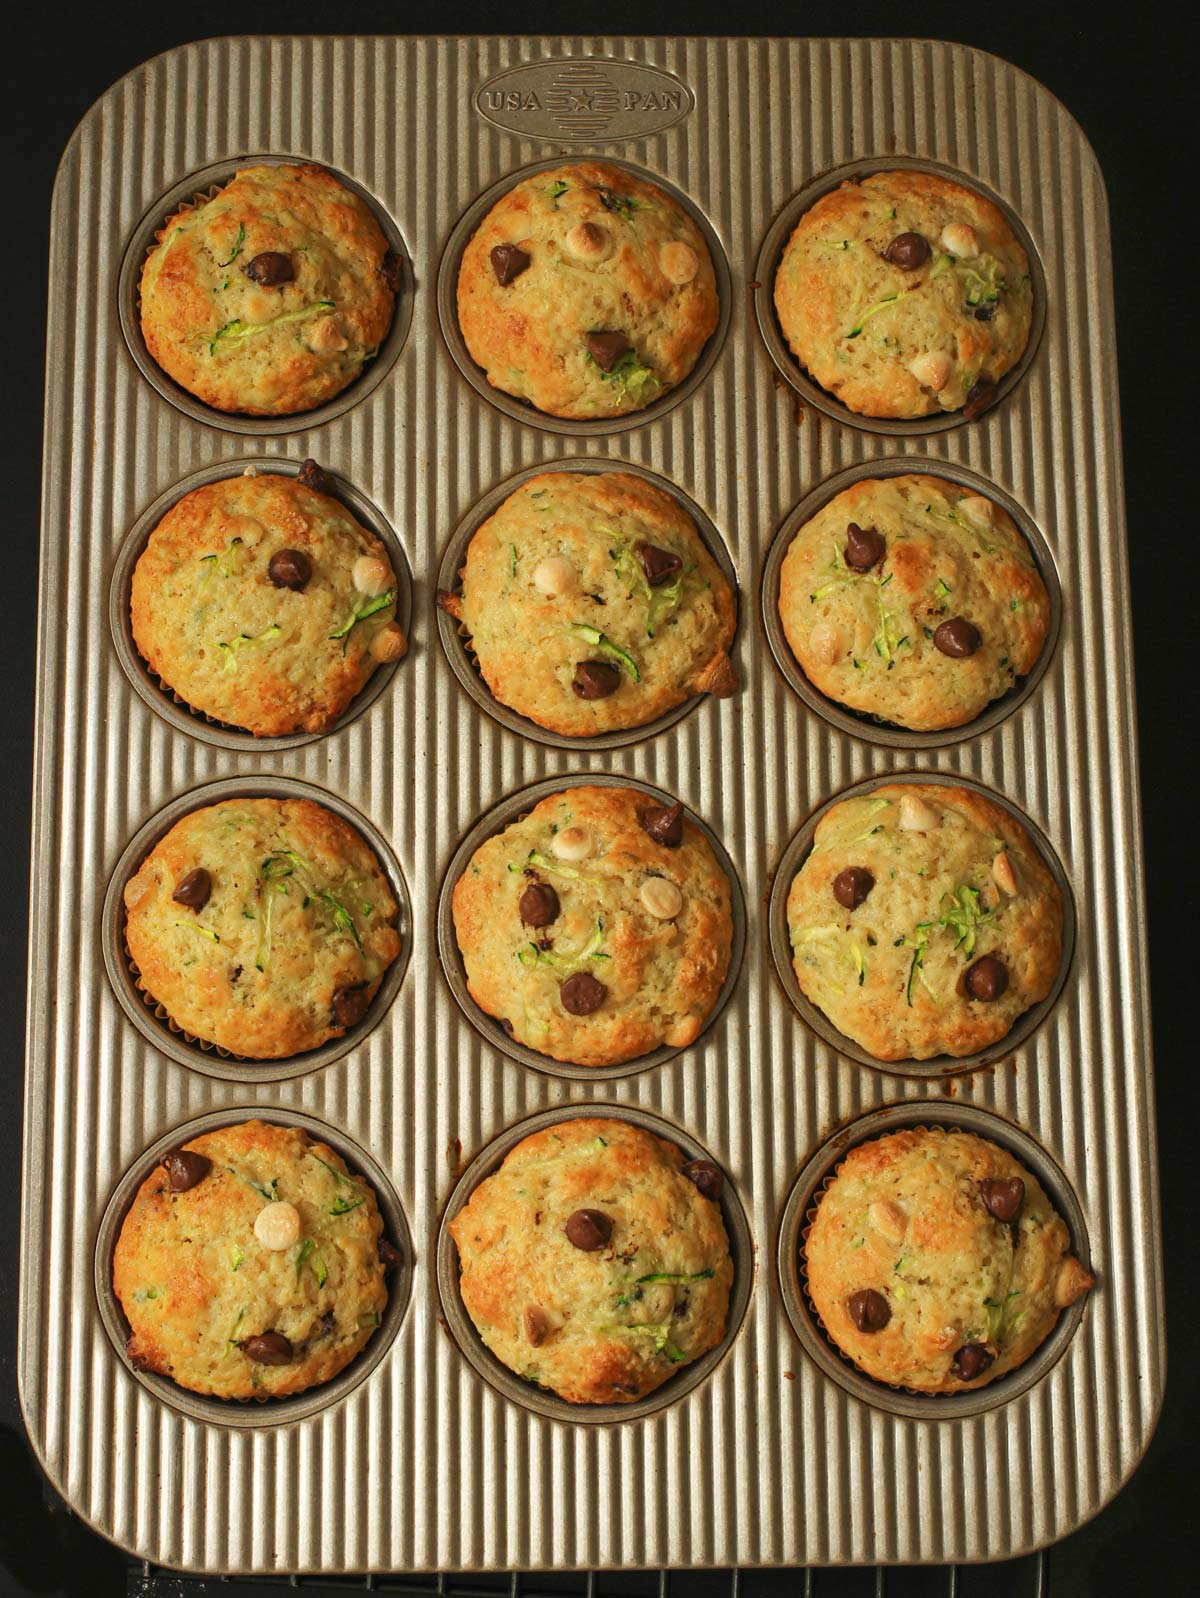 baked chocolate chip zucchini muffins in the muffin pan.